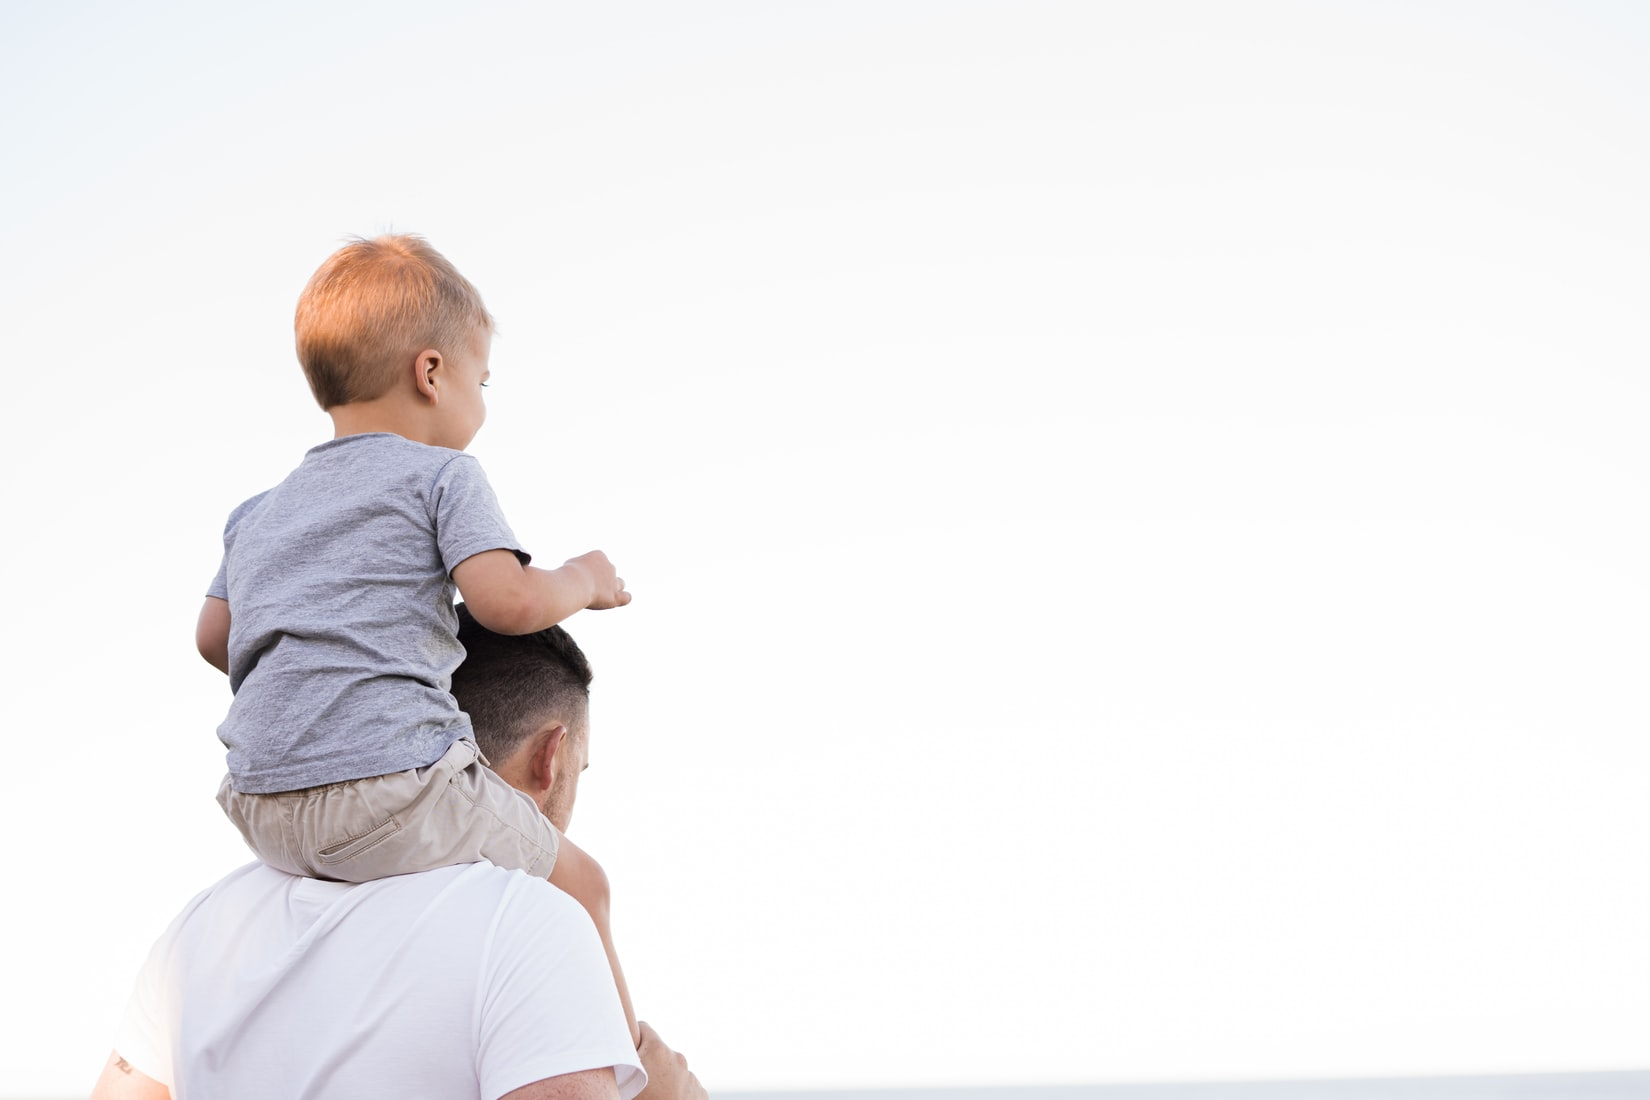 Father in white shirt carrying blonde boy on shoulders